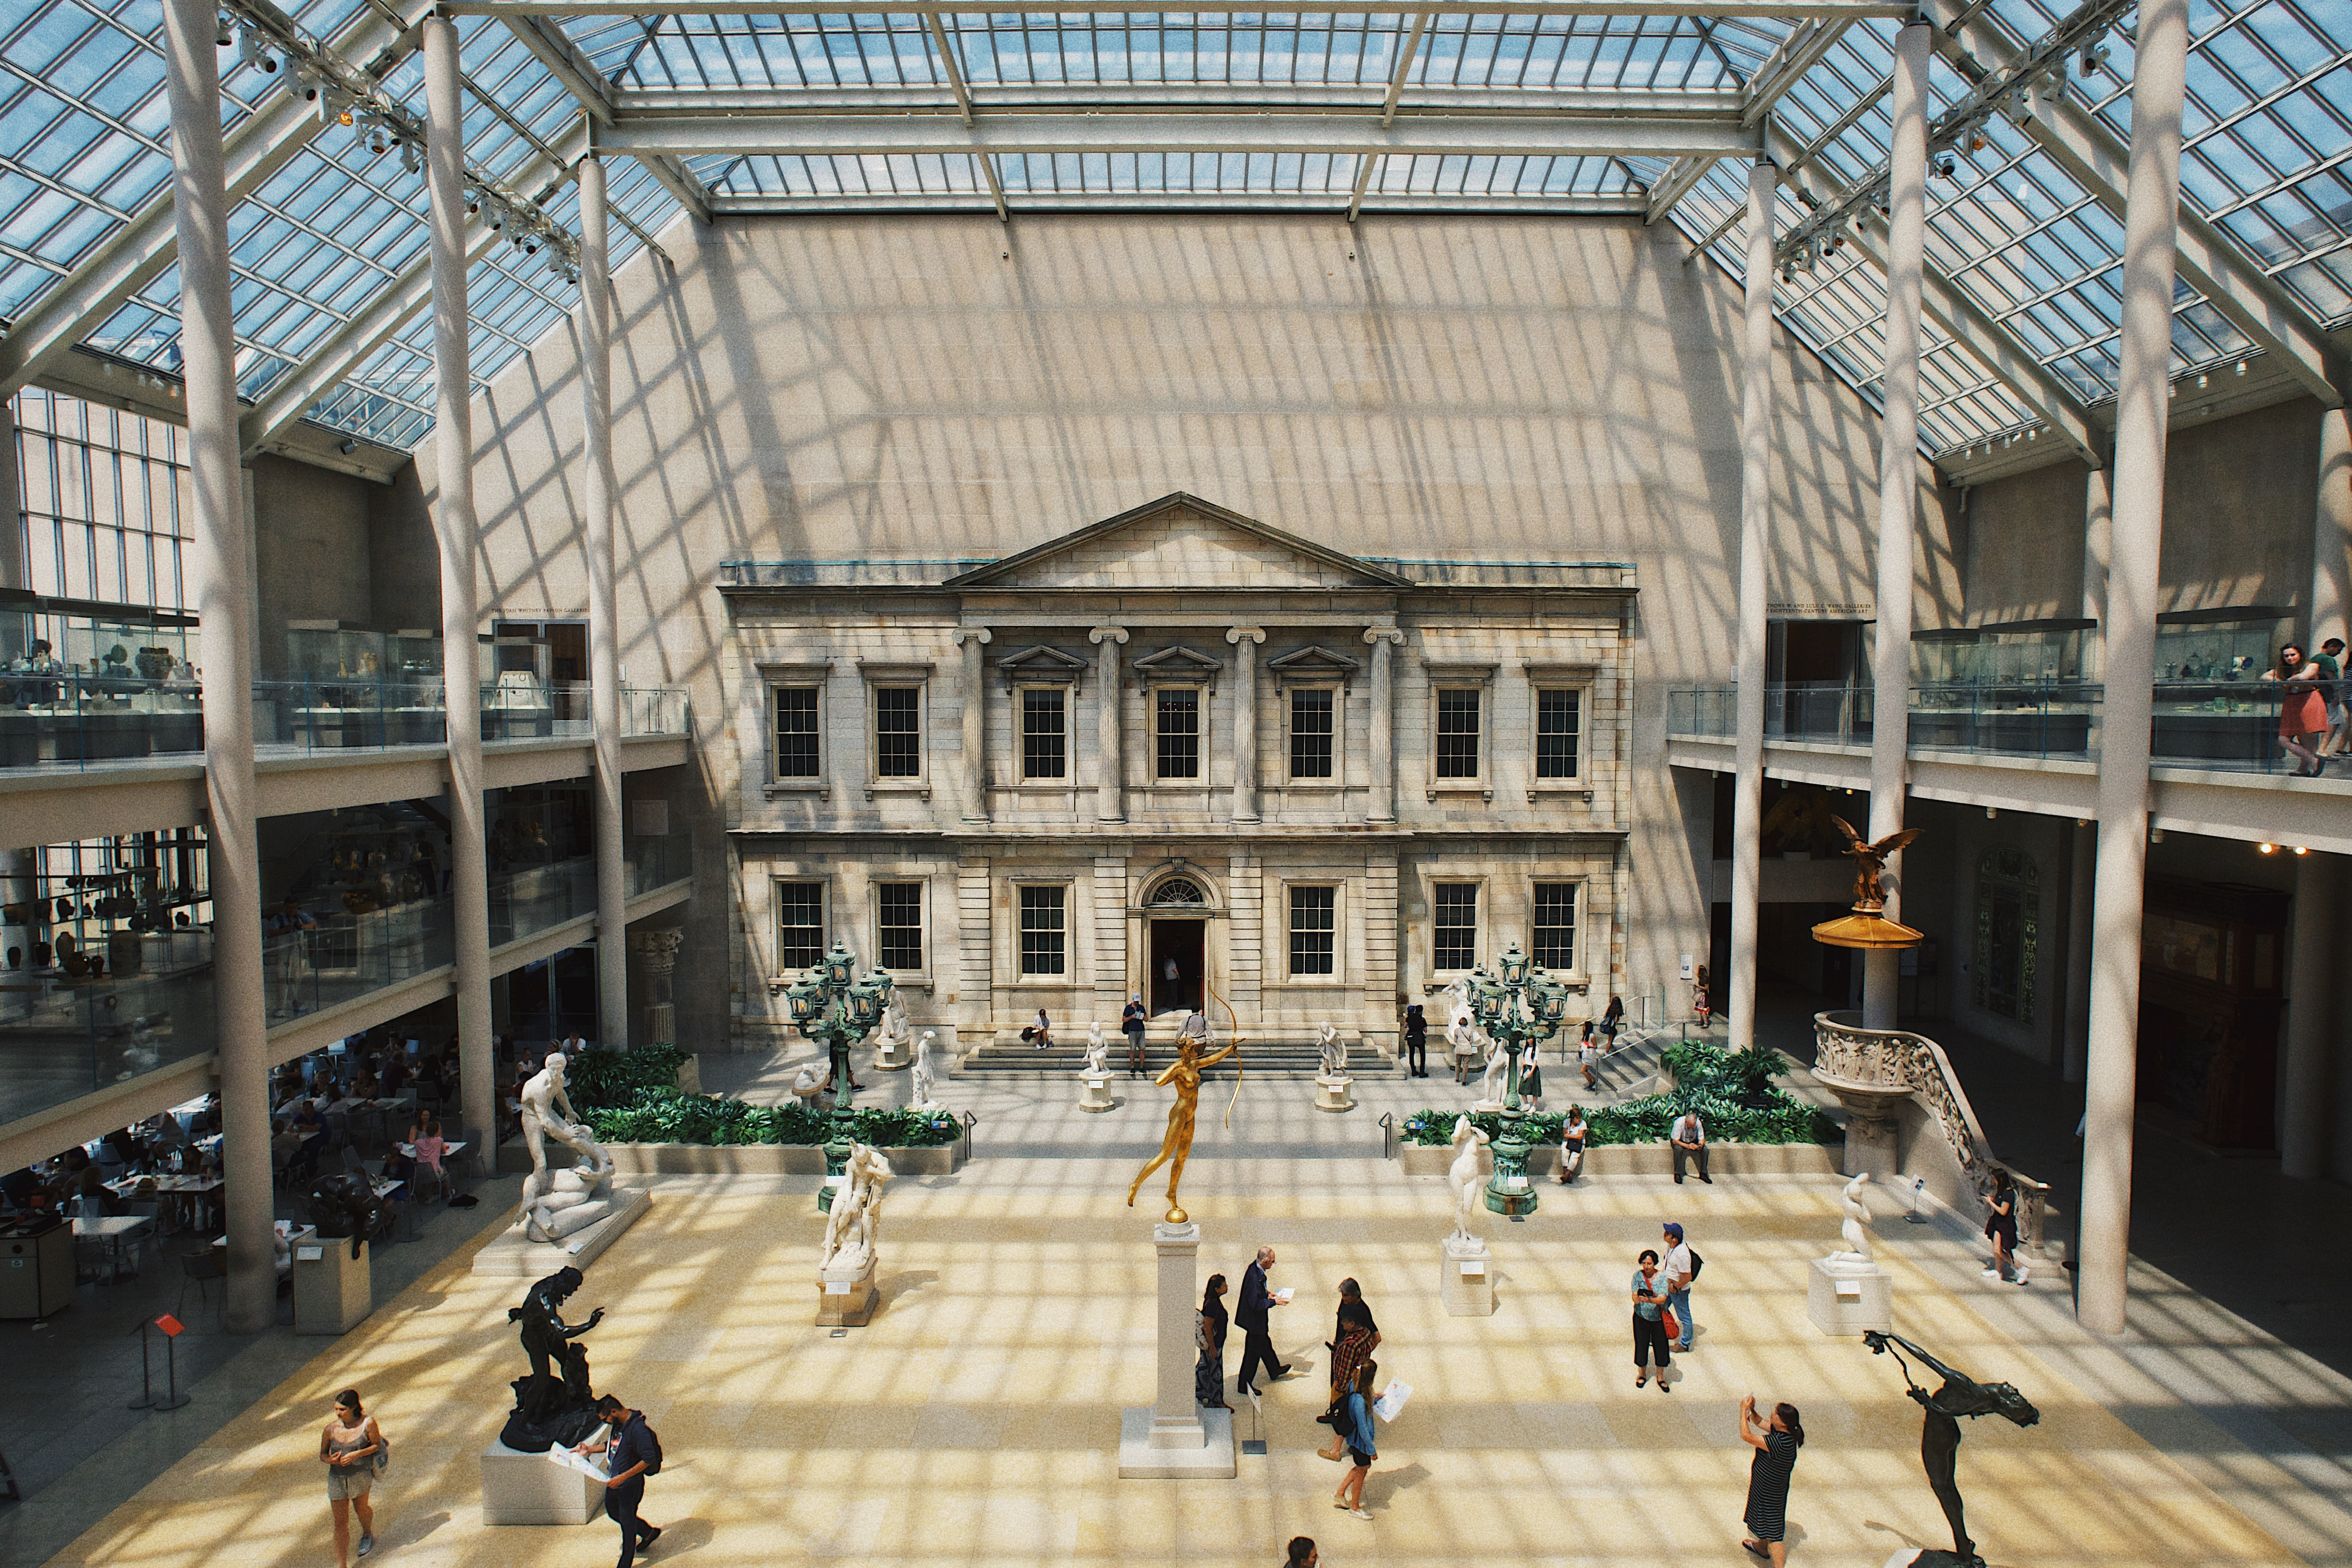 Museum interior in daytime with glass roof and people walking at The Metropolitan Museum of Art